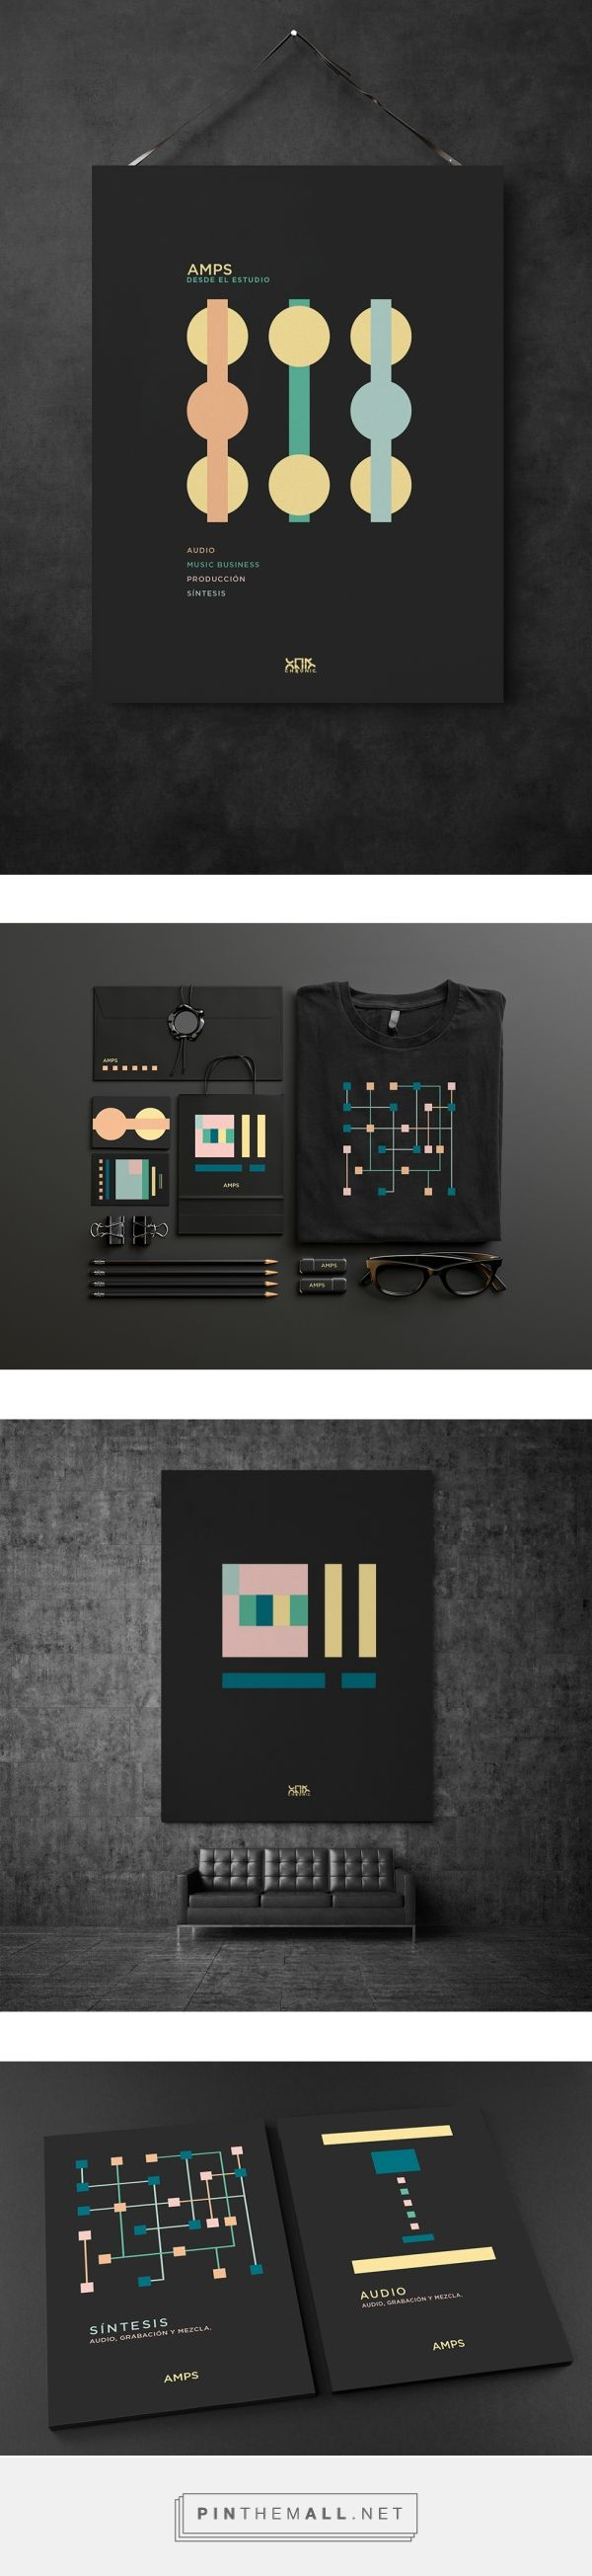 AMPS on Behance  | Fivestar Branding – Design and Branding Agency & Inspiration Gallery